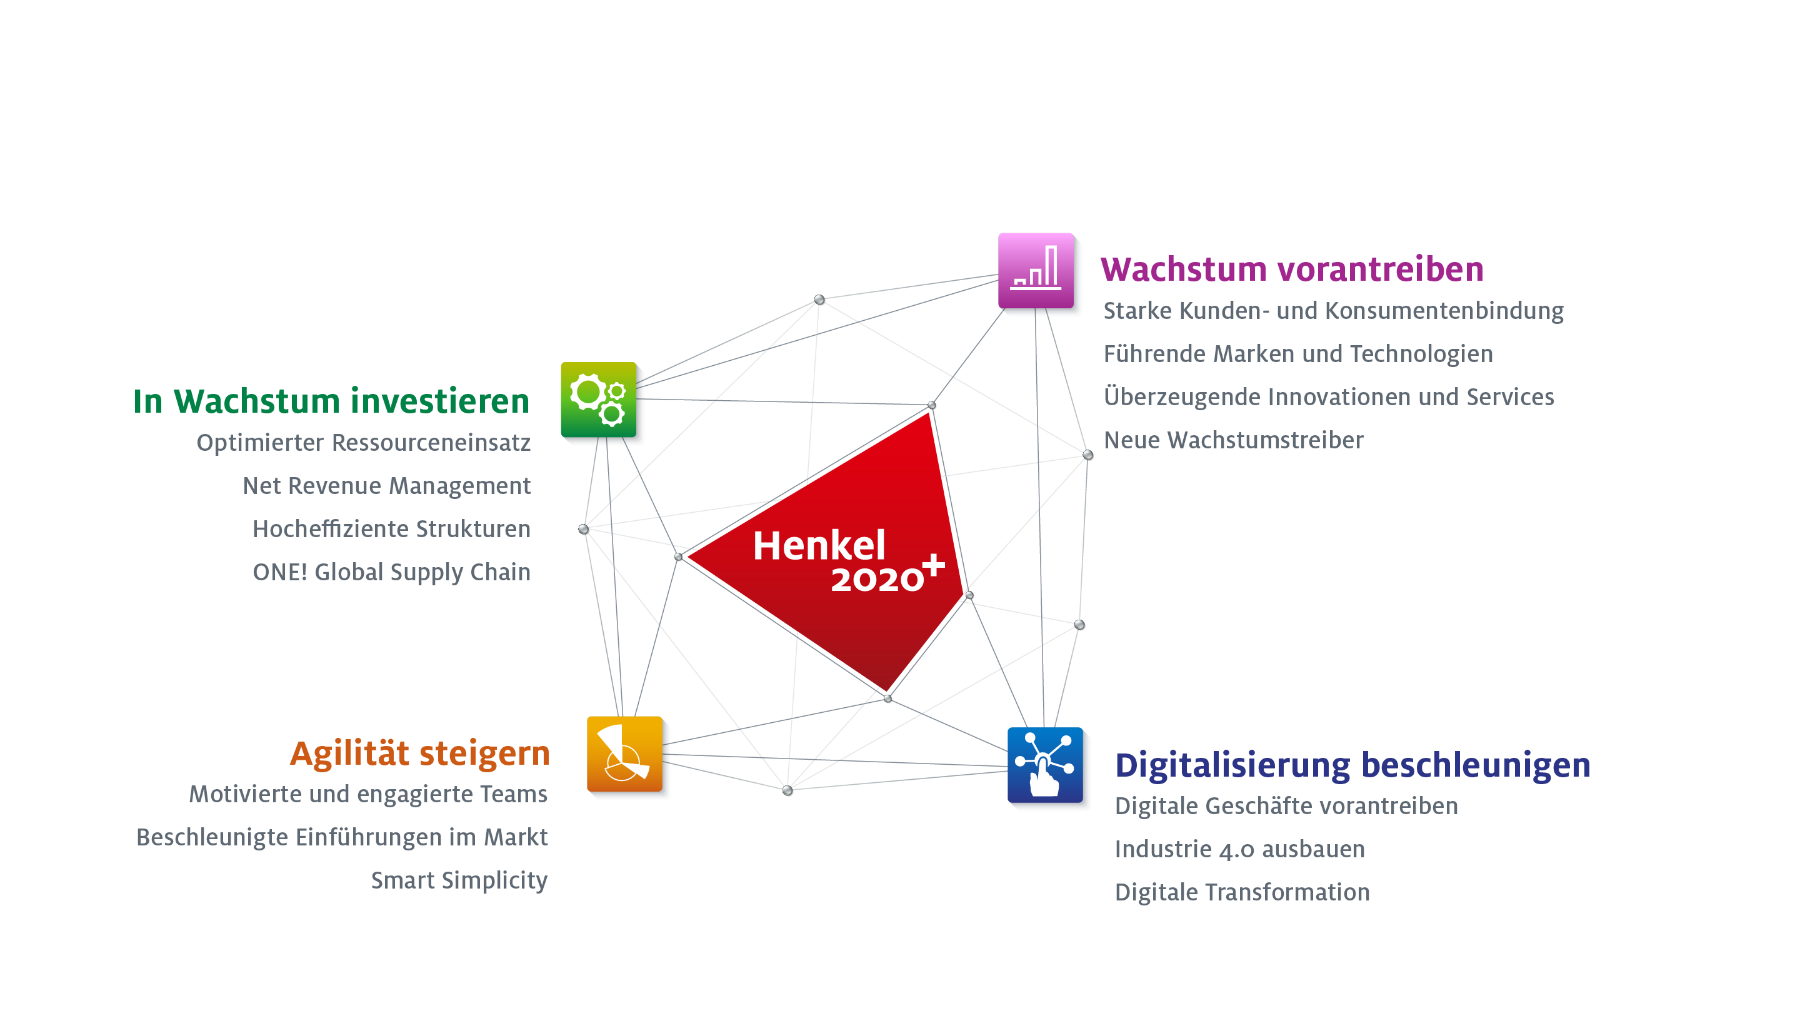 Henkel Strategie